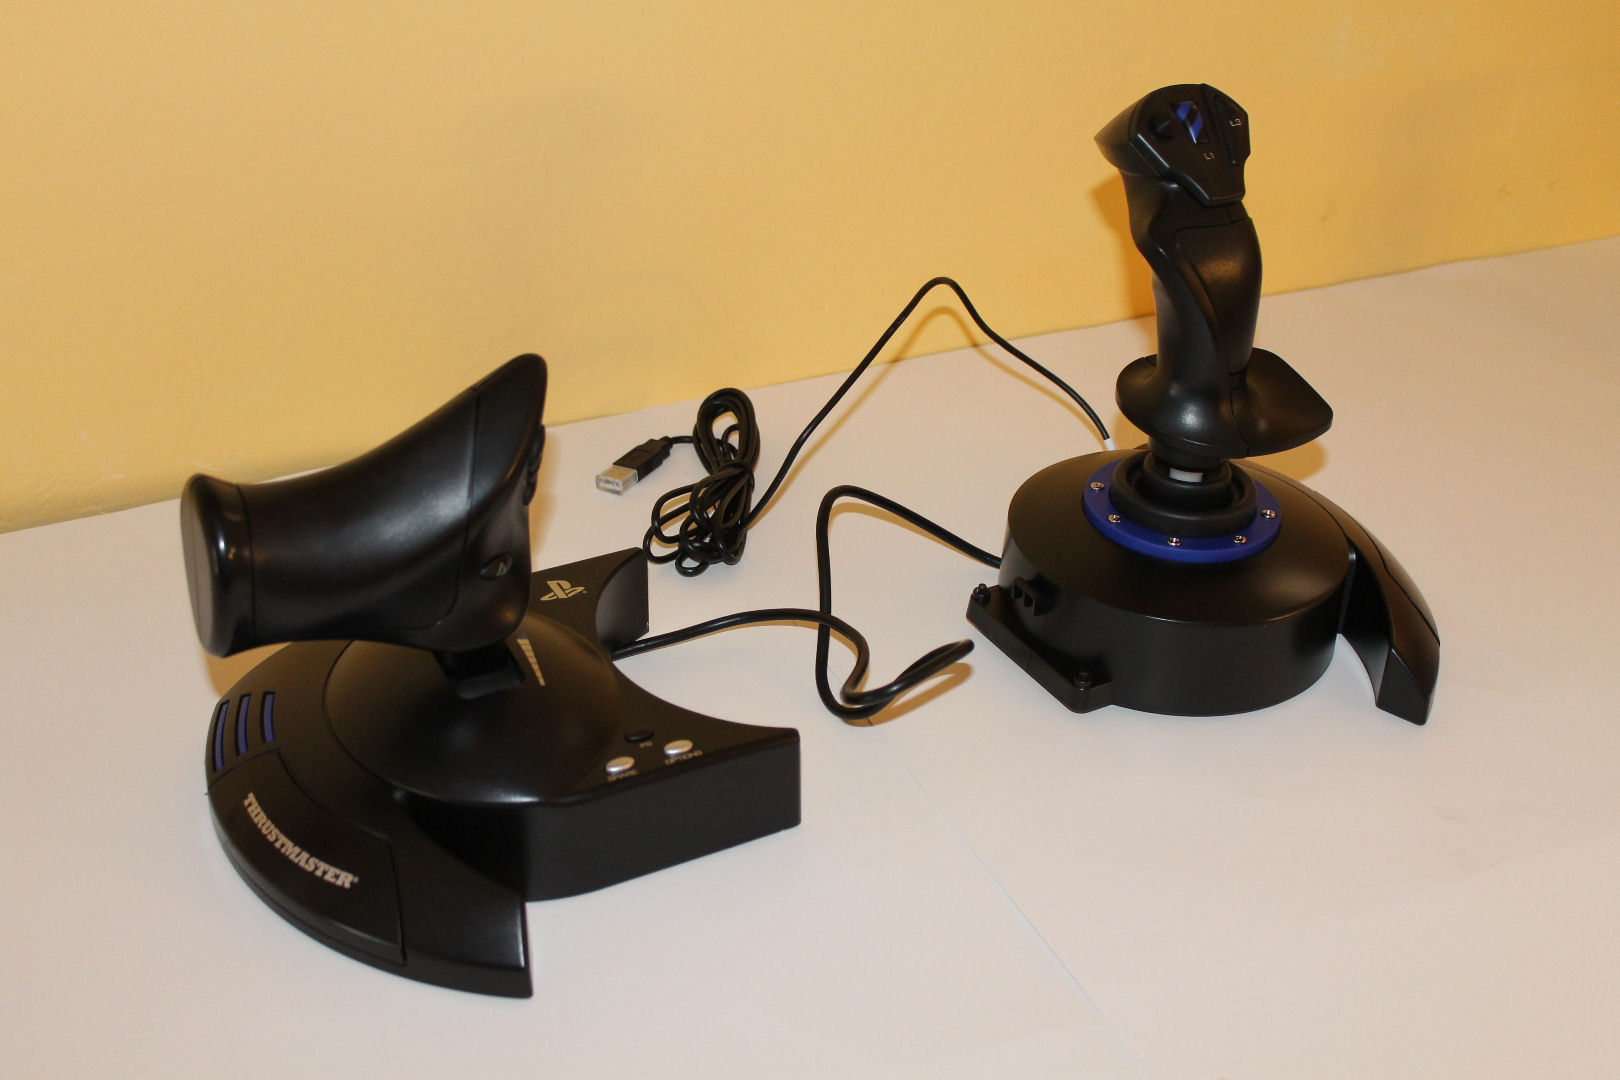 Thrustmaster T Flight Hotas 4 and Rudder Pedals – Overview